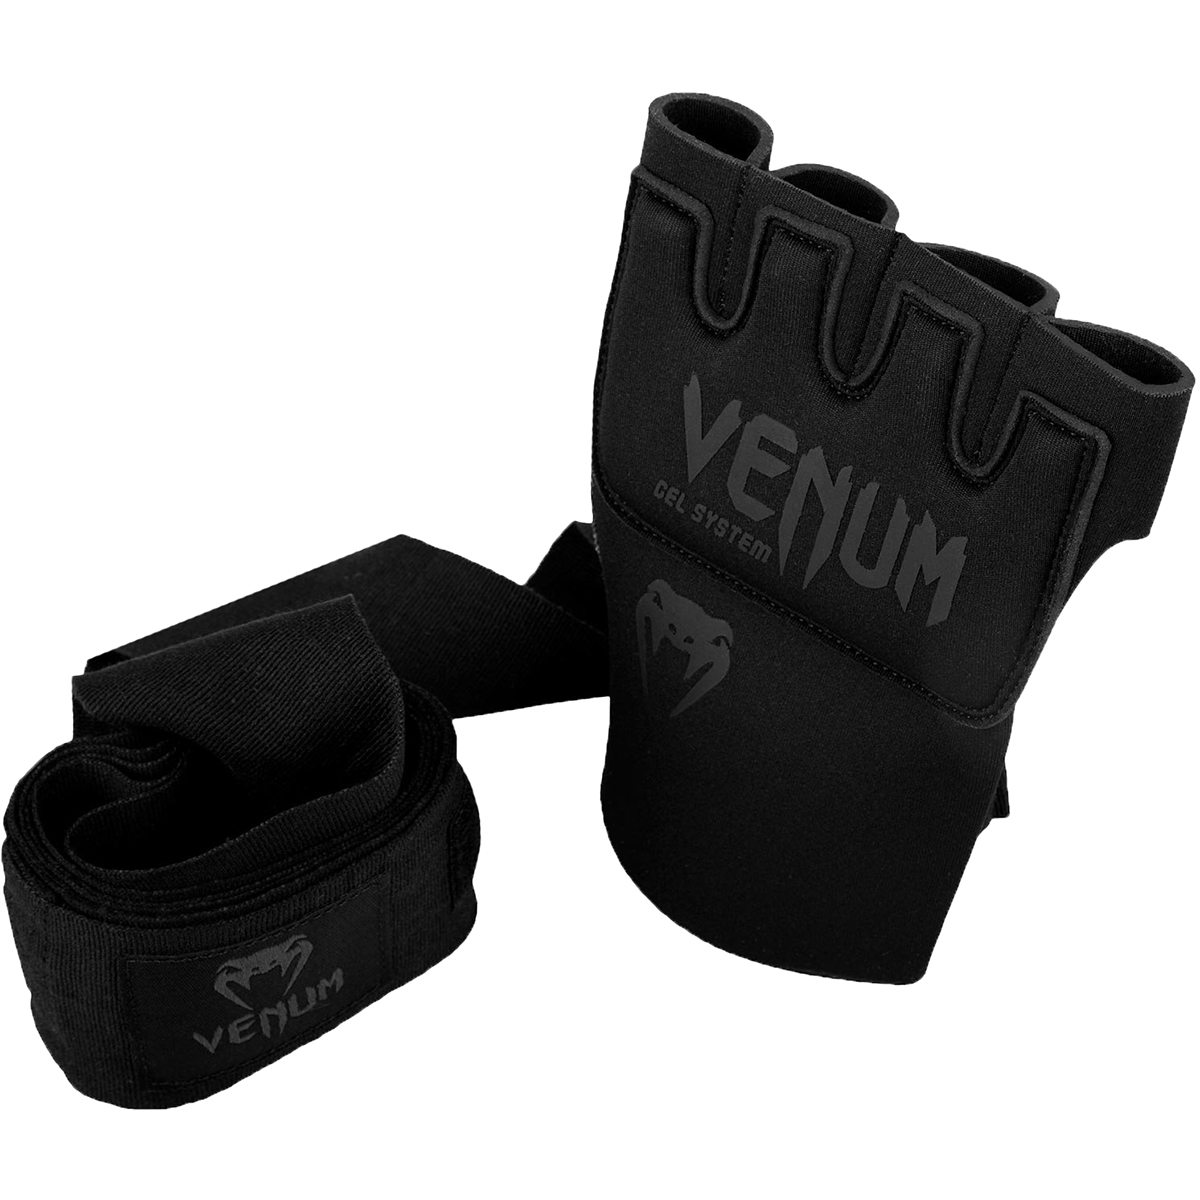 Venum-Kontact-Protective-Shock-Absorbing-Gel-MMA-Glove-Wraps thumbnail 5